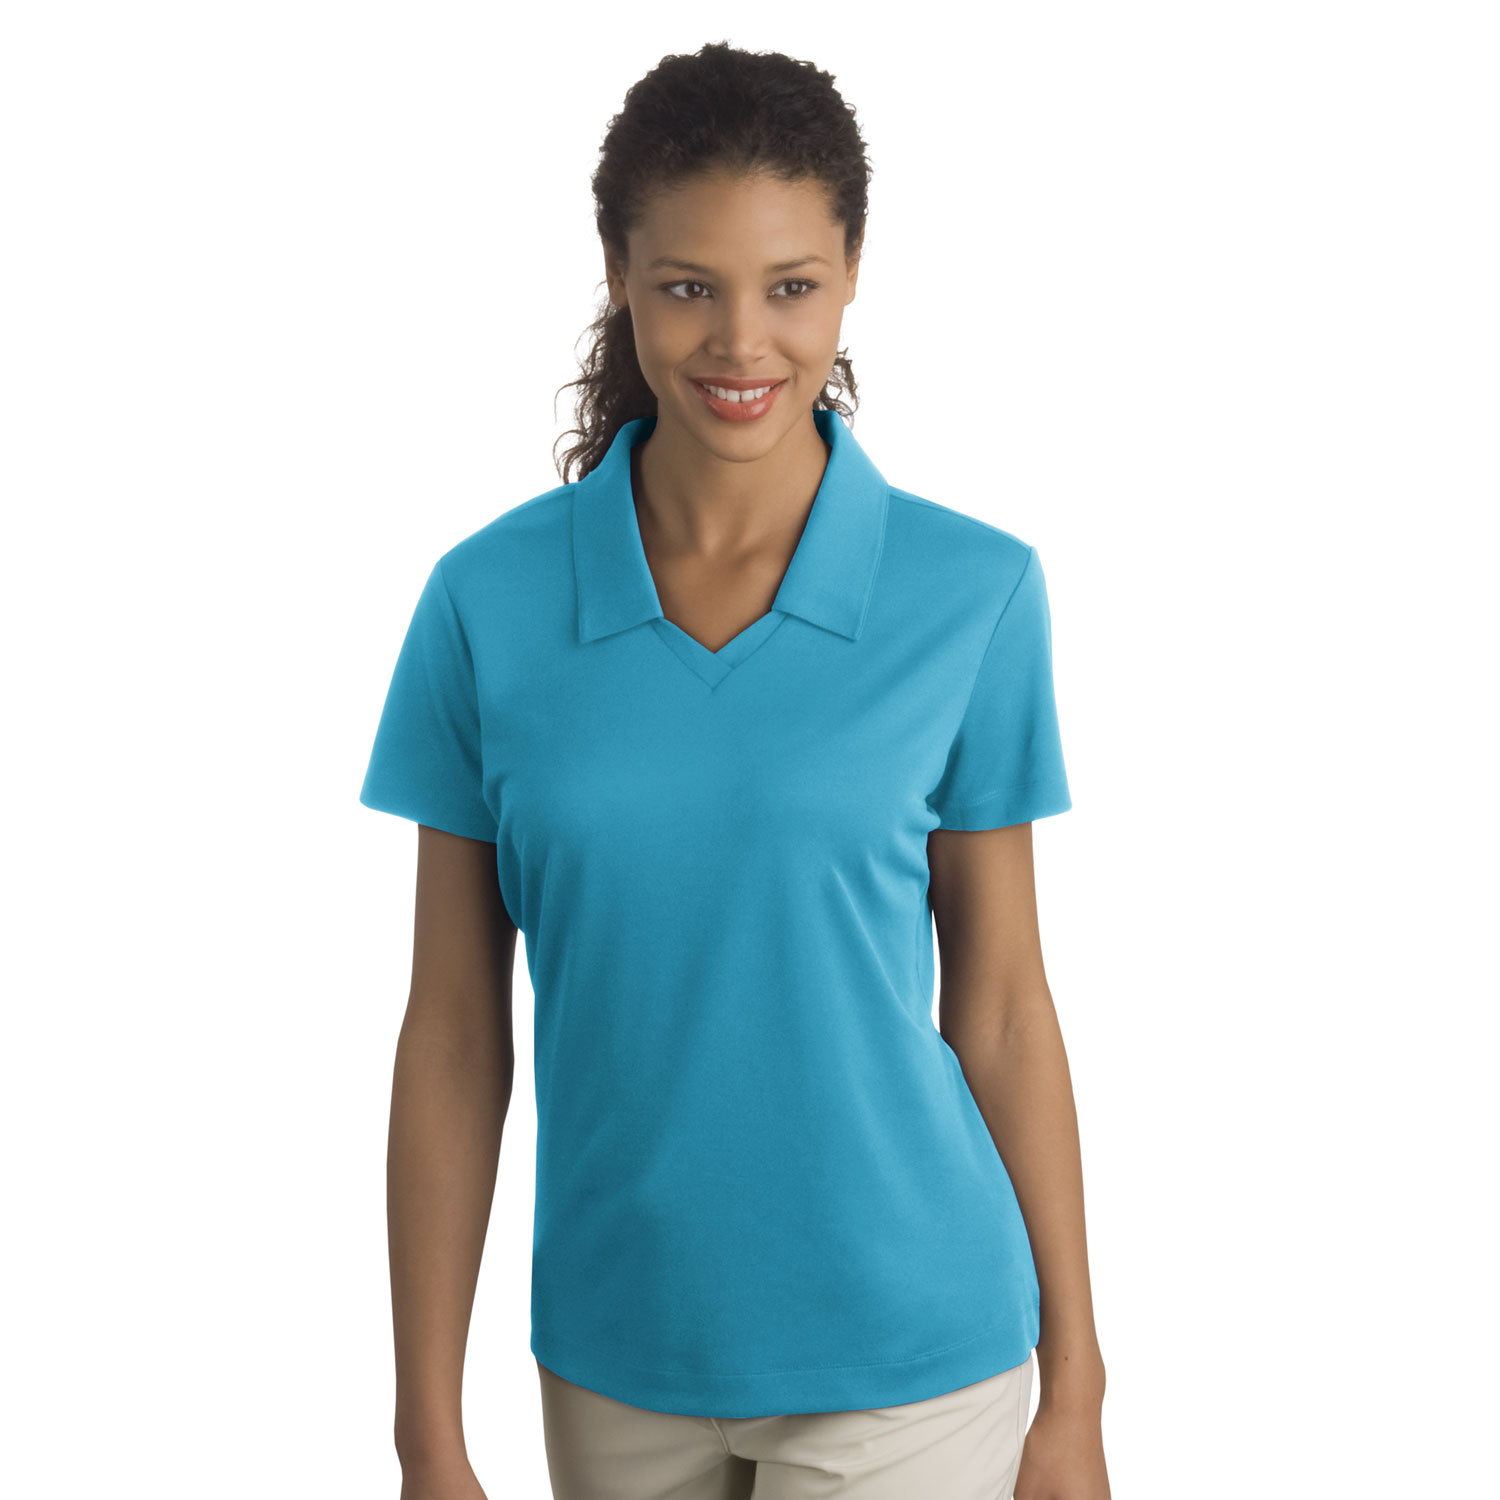 5a9368b9 Dri-FIT Micro Pique Polo Nike Golf- Ladies – Cherie4art Commercial ...